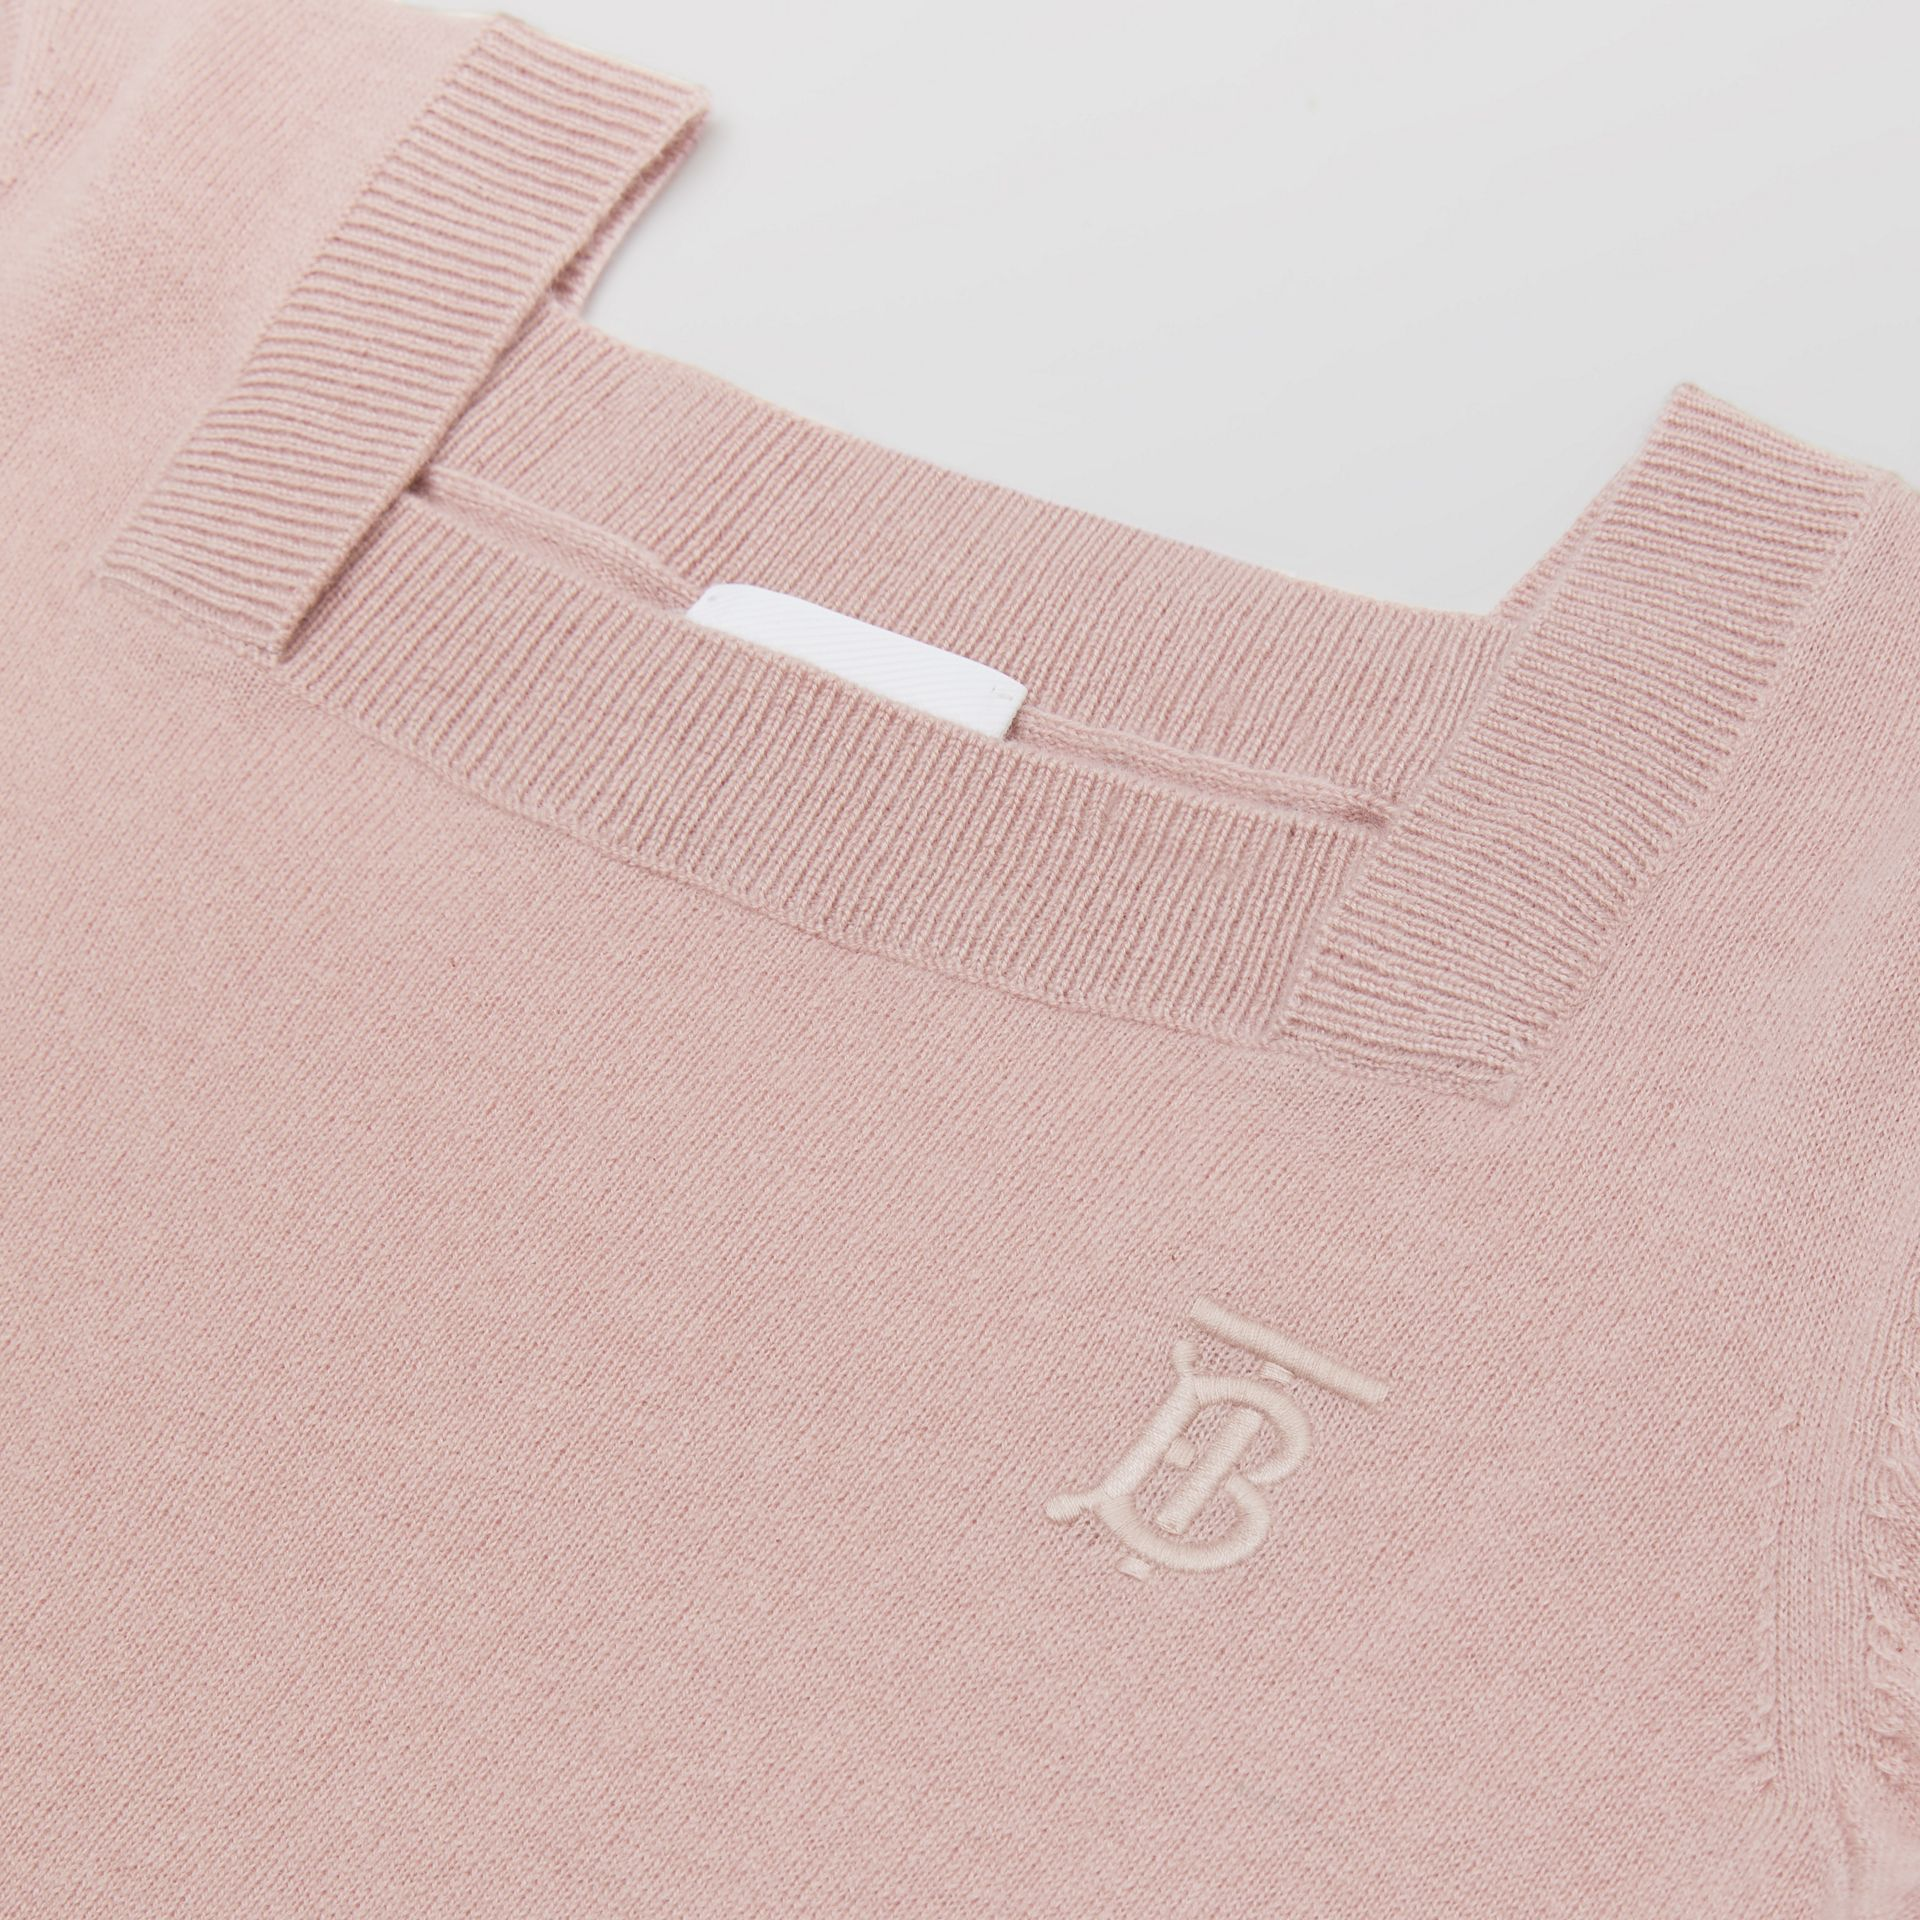 Monogram Motif Cashmere Sweater Dress in Lavender Pink | Burberry - gallery image 1